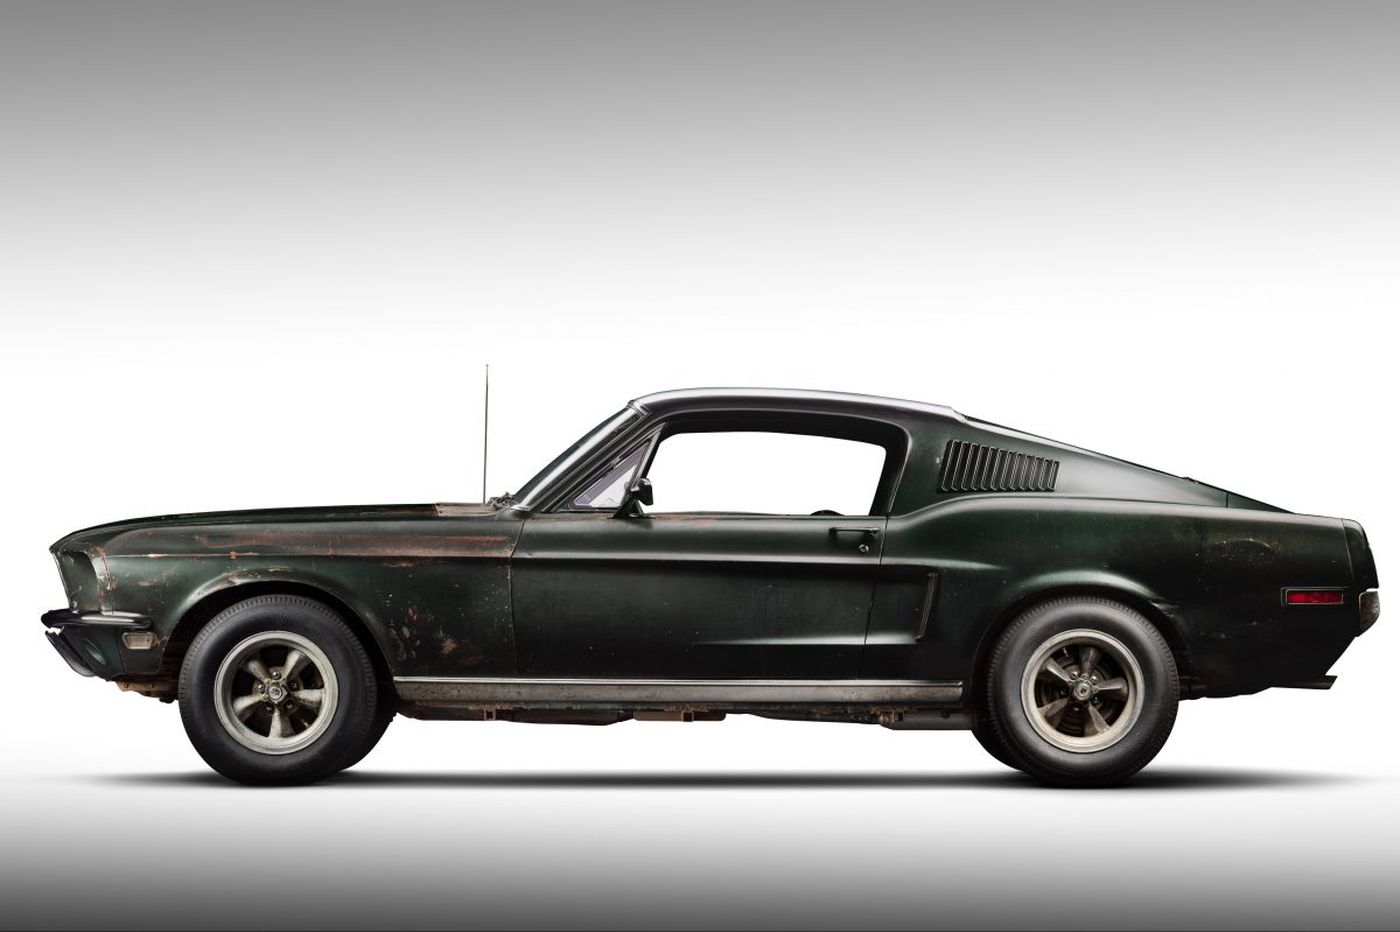 Here's why the Ford Mustang is the No. 1 movie car